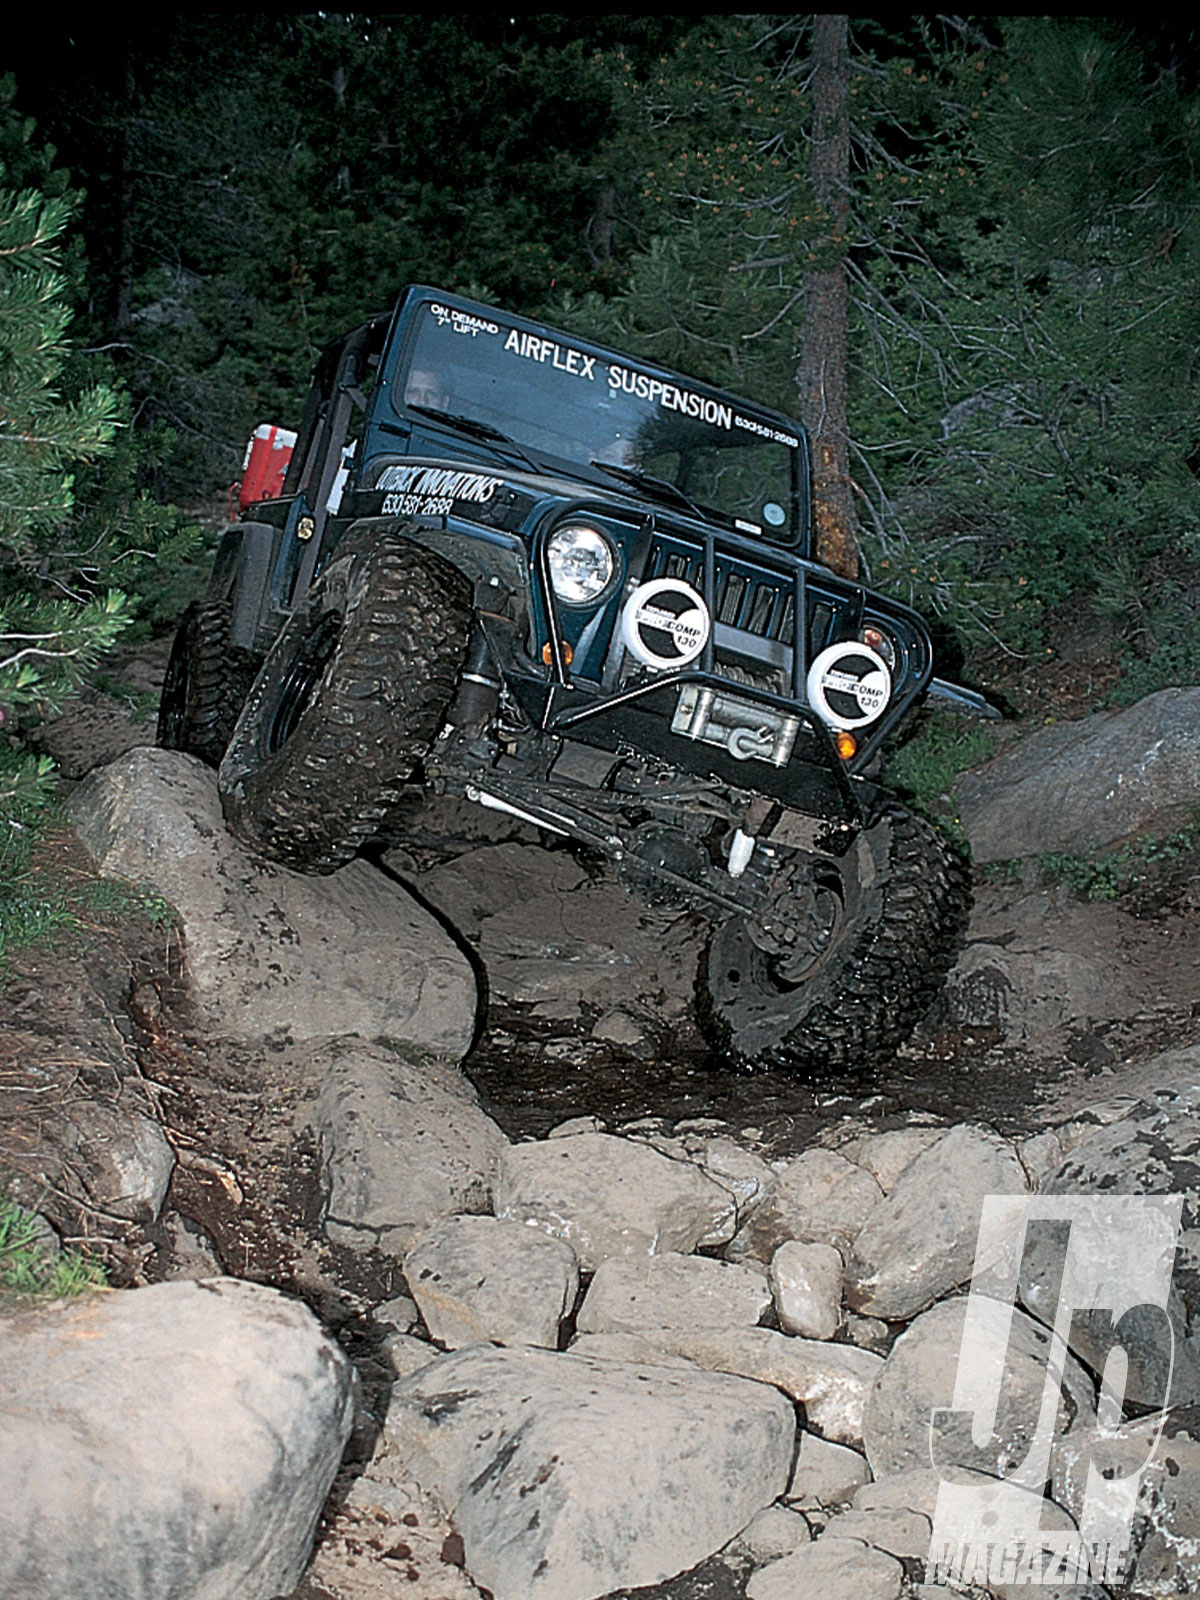 154 9901 11 o+154 9901 rubicon jeep fest+wrangler tj on old sluice